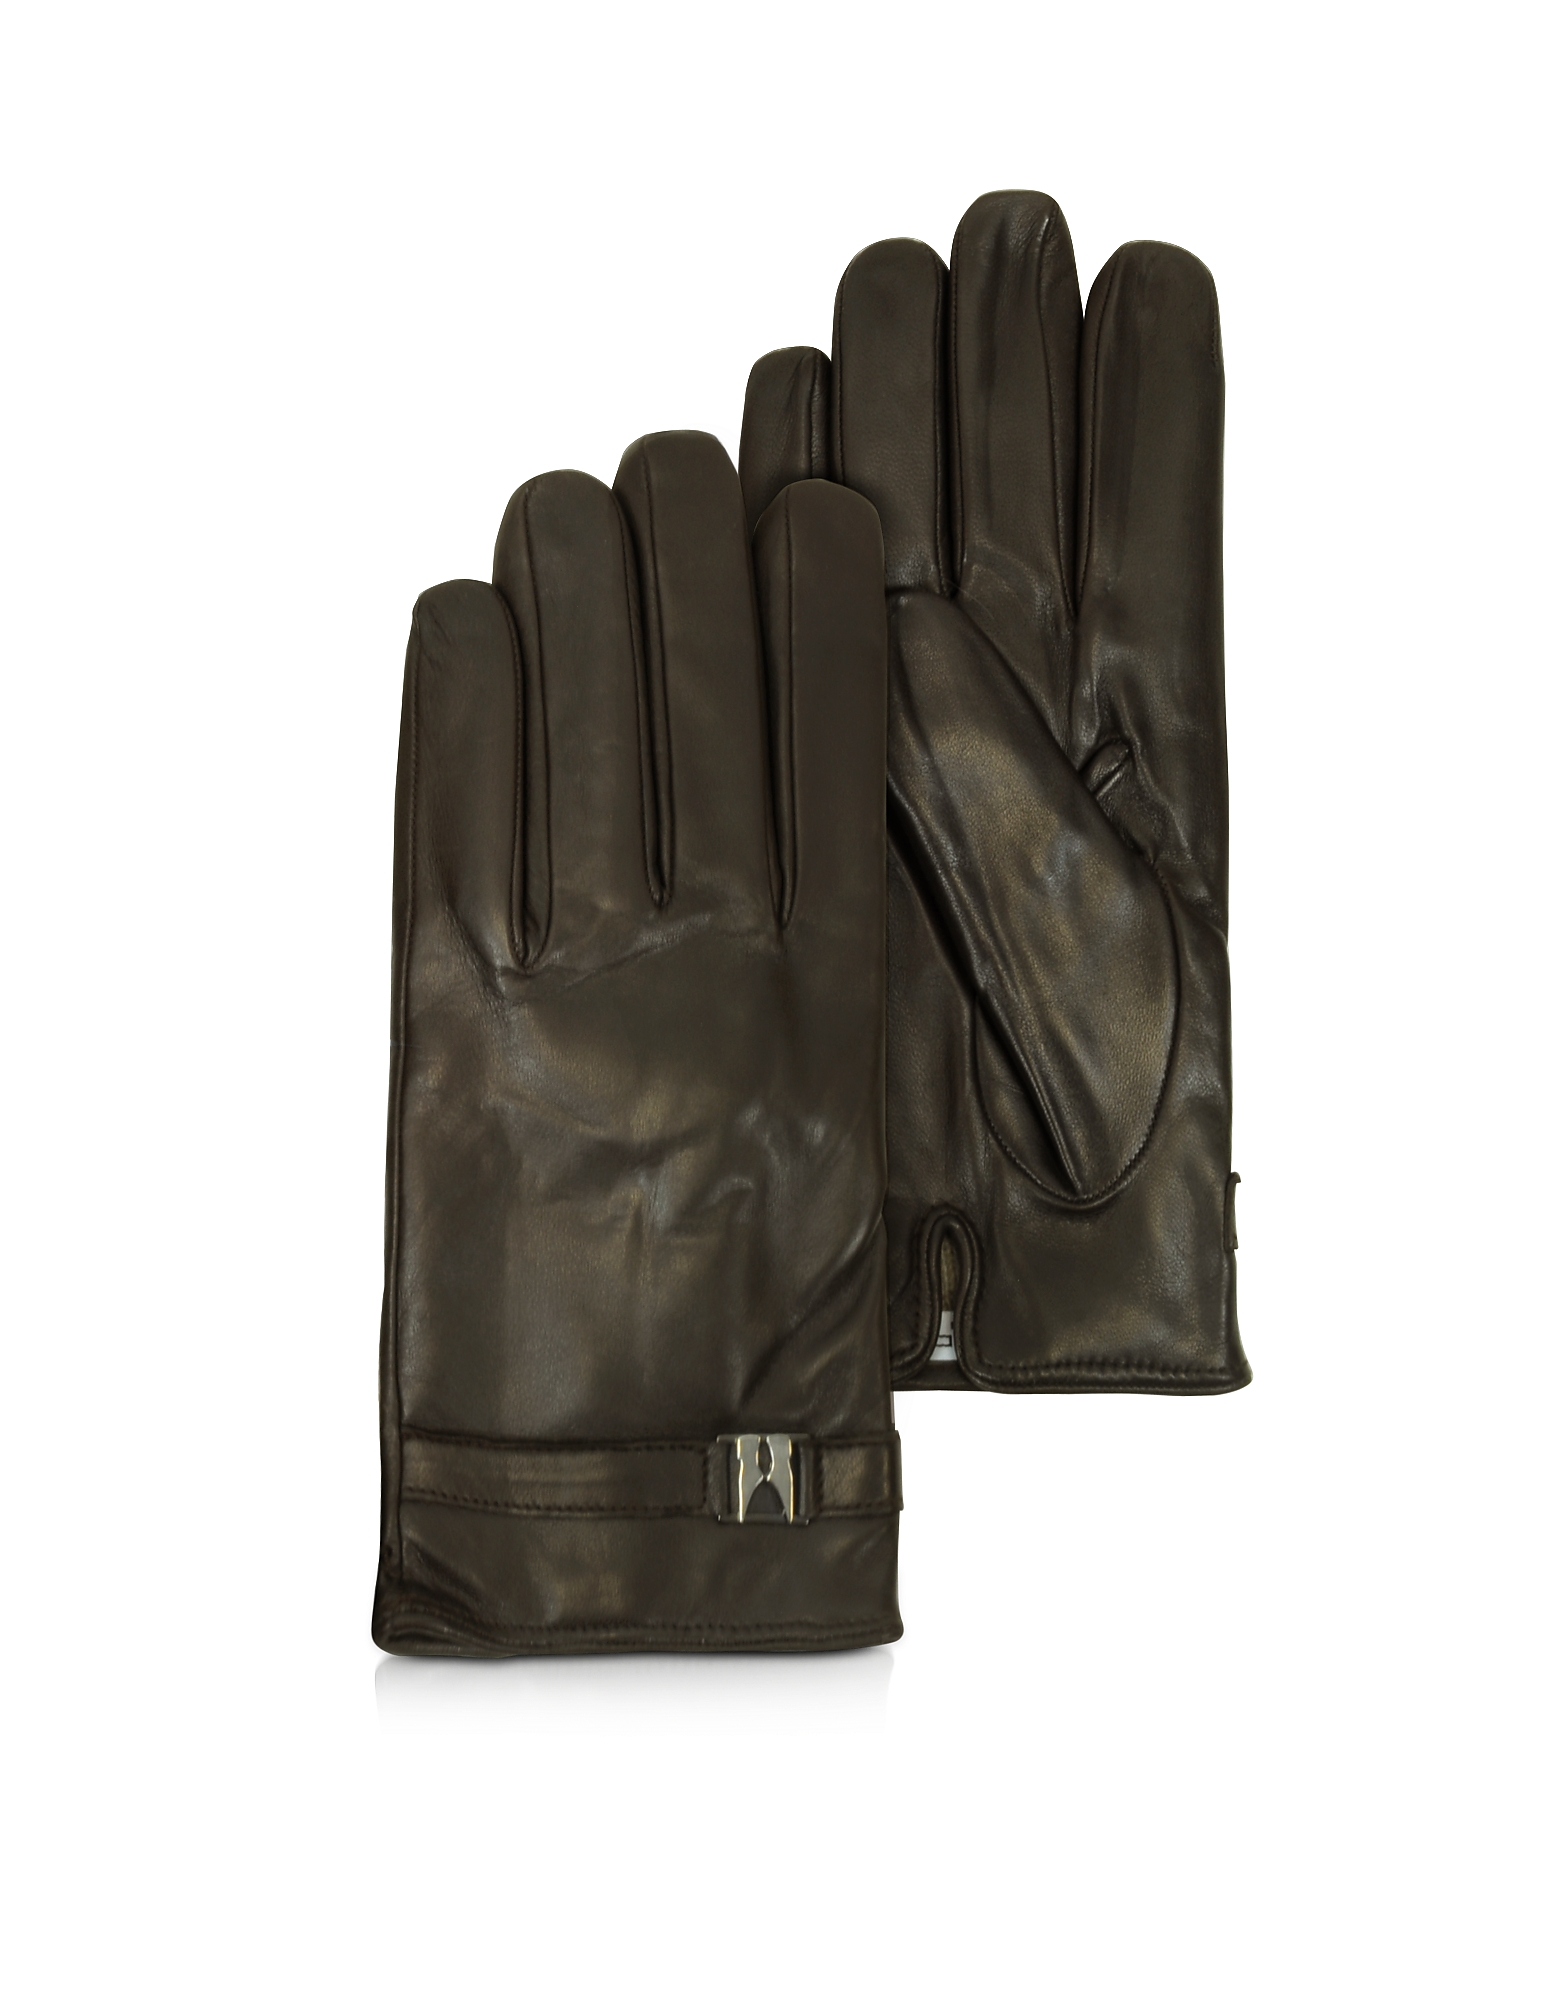 Moreschi Men's Gloves, Alaska Dark Brown Leather Men's Gloves w/Cashmere Lining